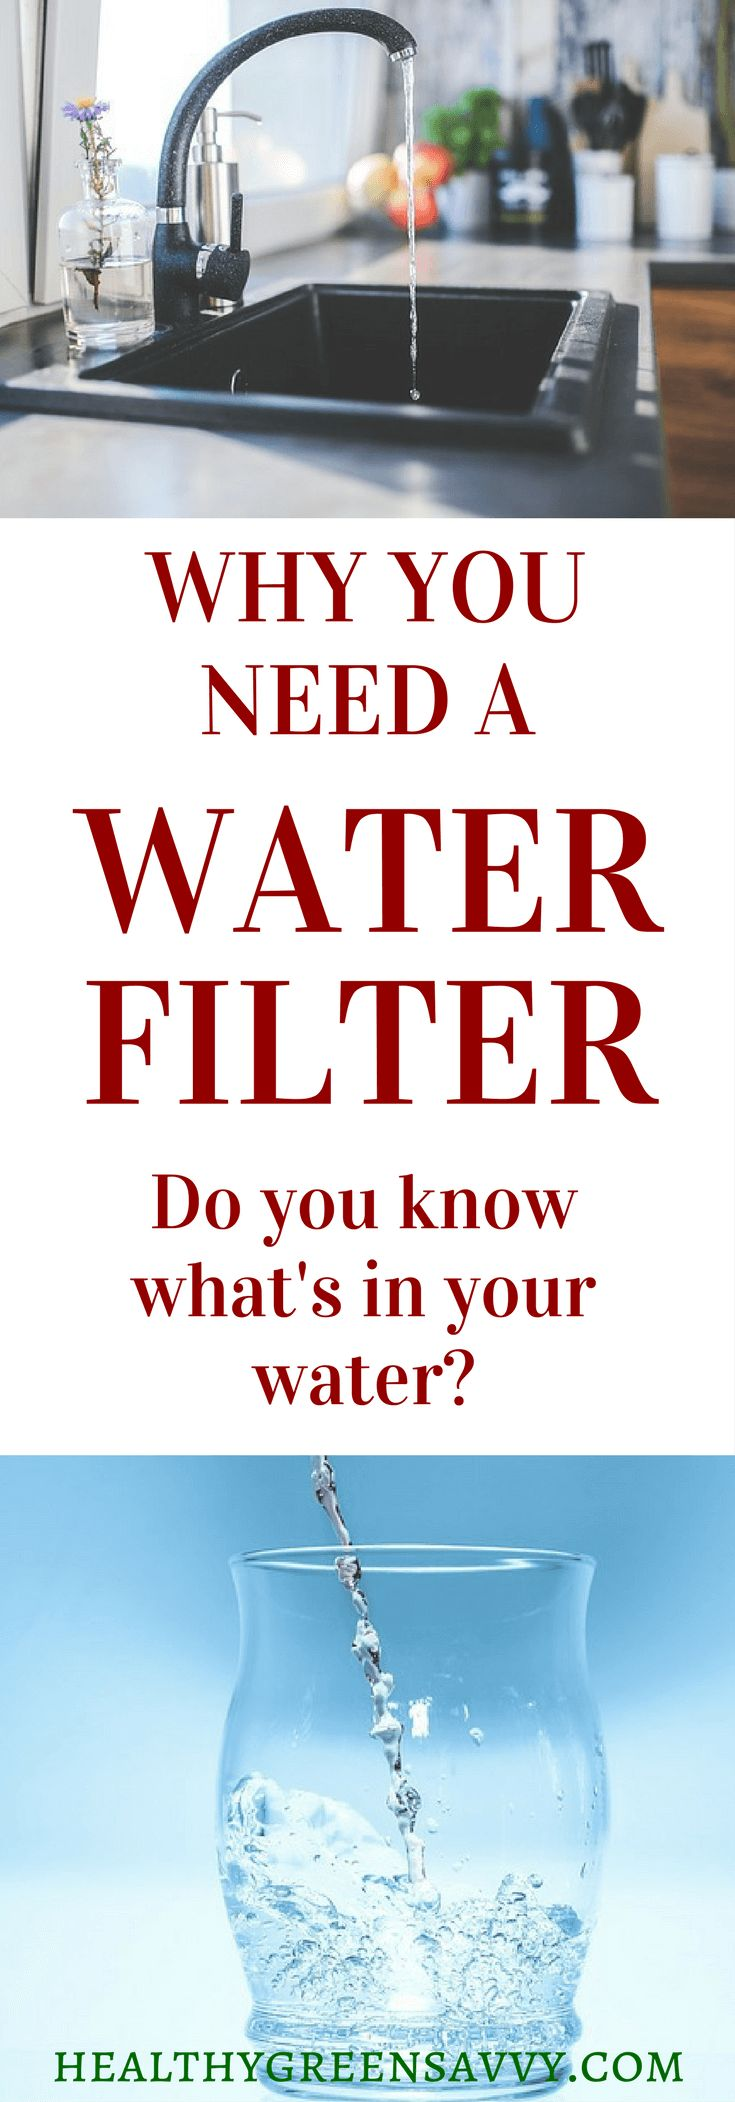 Why You Need a Water Filter: Invisible and dangerous compounds in your water may be jeopardizing your health. How to get toxins out of your water. | non-toxic | safe water | best water filters